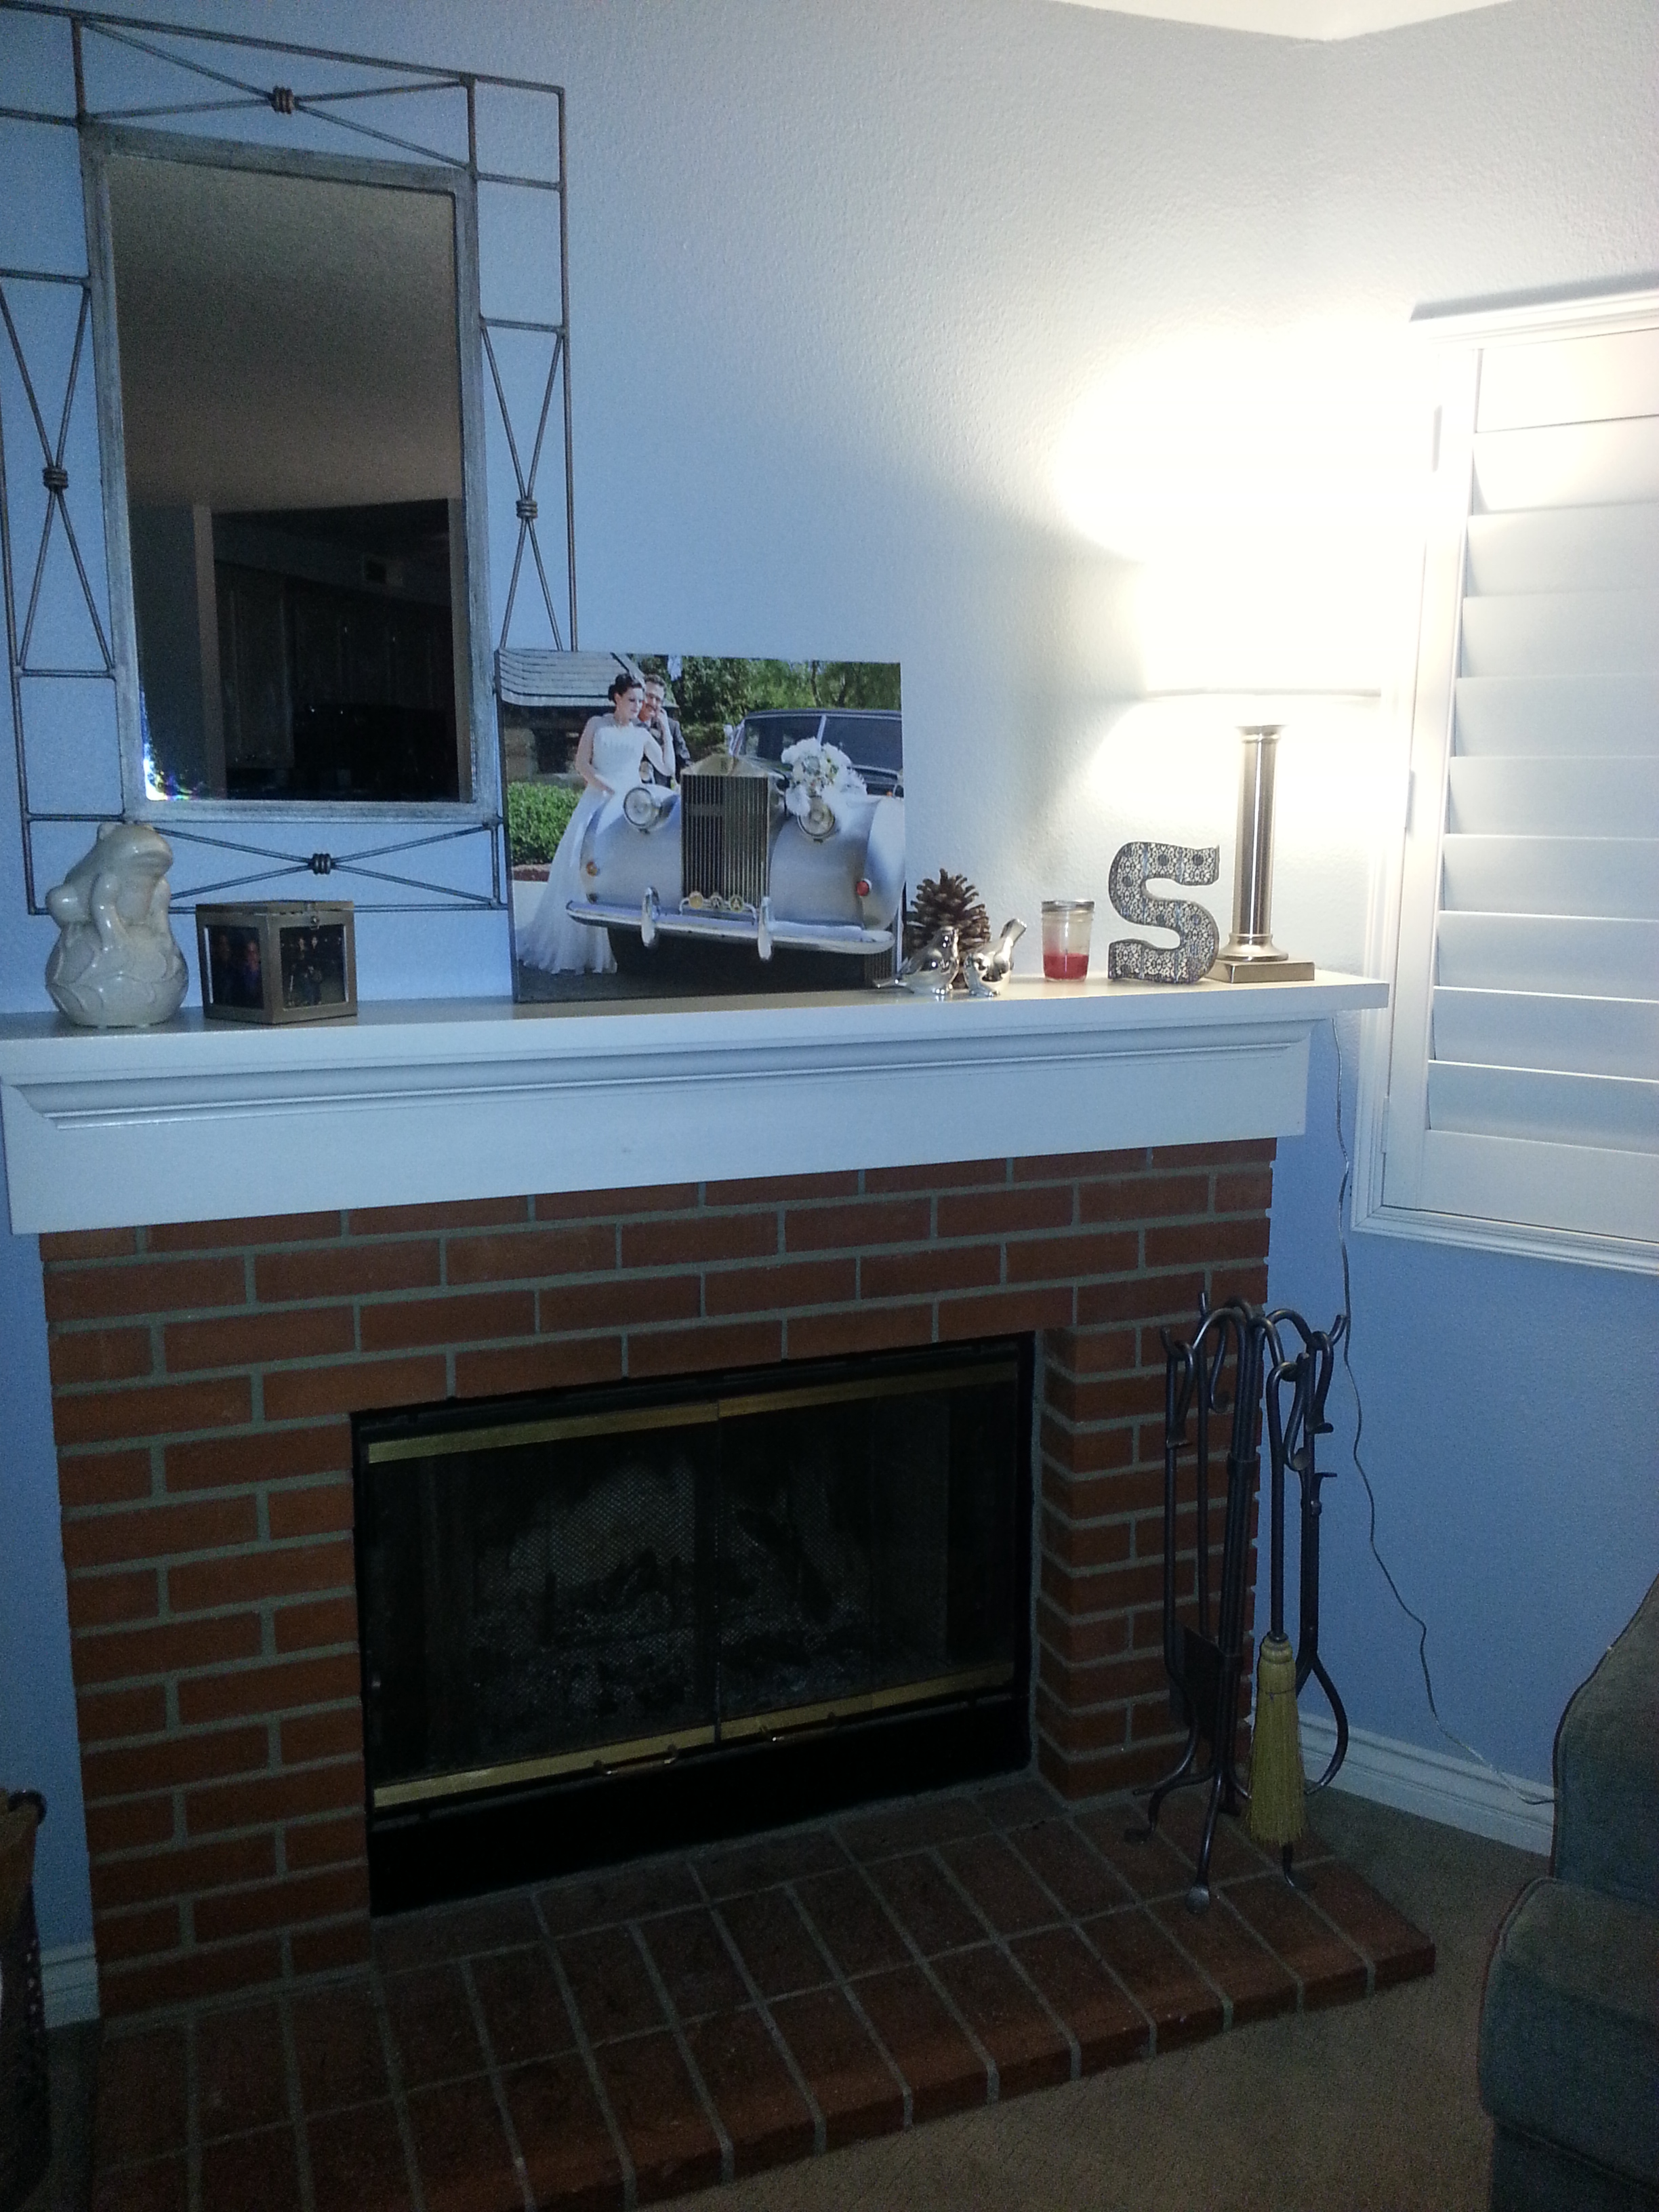 So it is really hard to get a good photo of a fireplace with a mirror on it and not be in the photo, so here is an okay after shot.